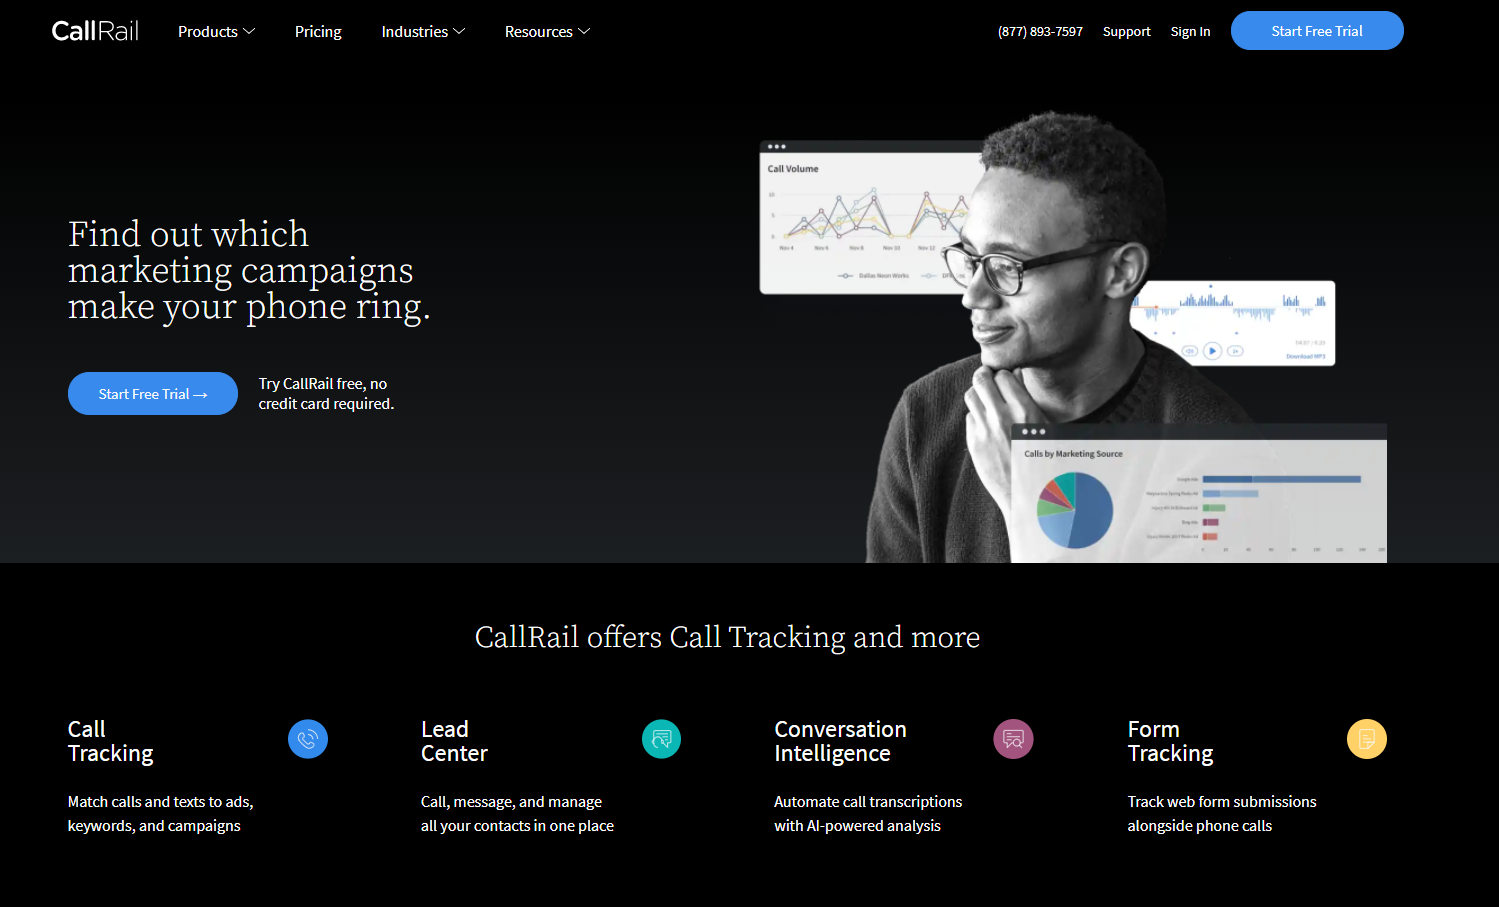 Bring all the call data, analysis, and insights into one place like Call Rail